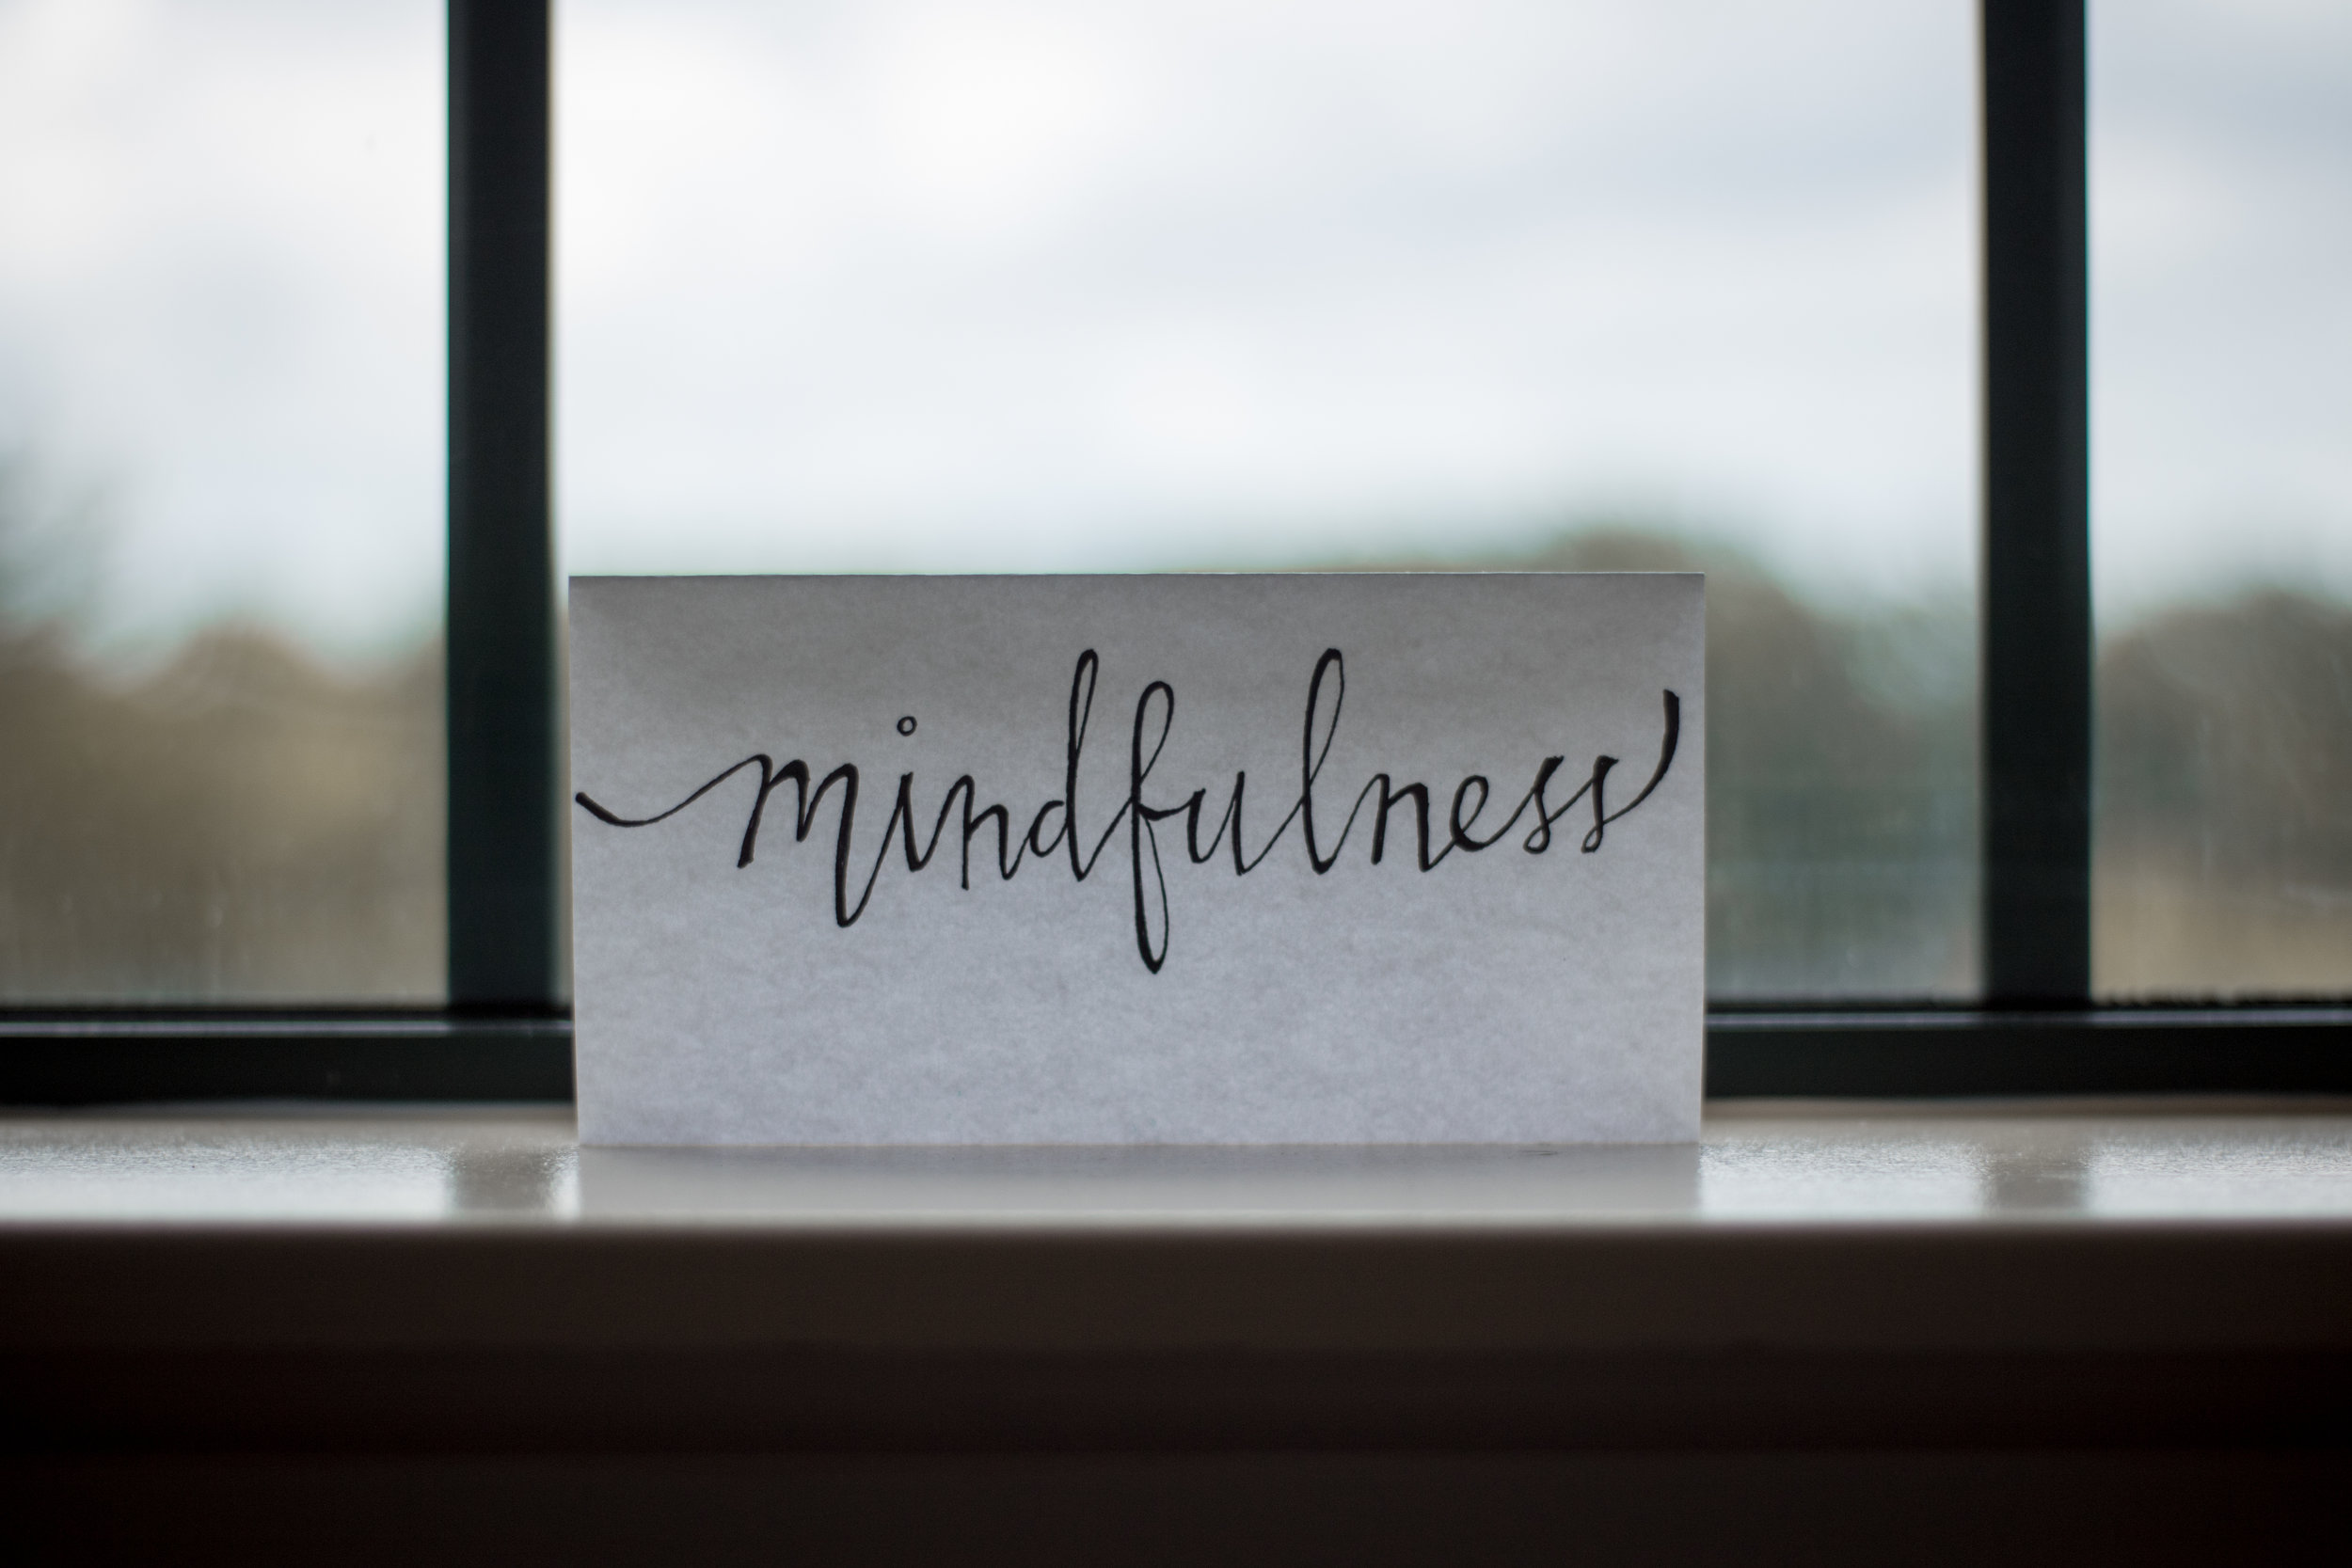 Mindfulness is the practice of: - Paying attention to our experience in the following ways: intentionally, non-judgementally, and in the present moment… which is not always as easy as it sounds!